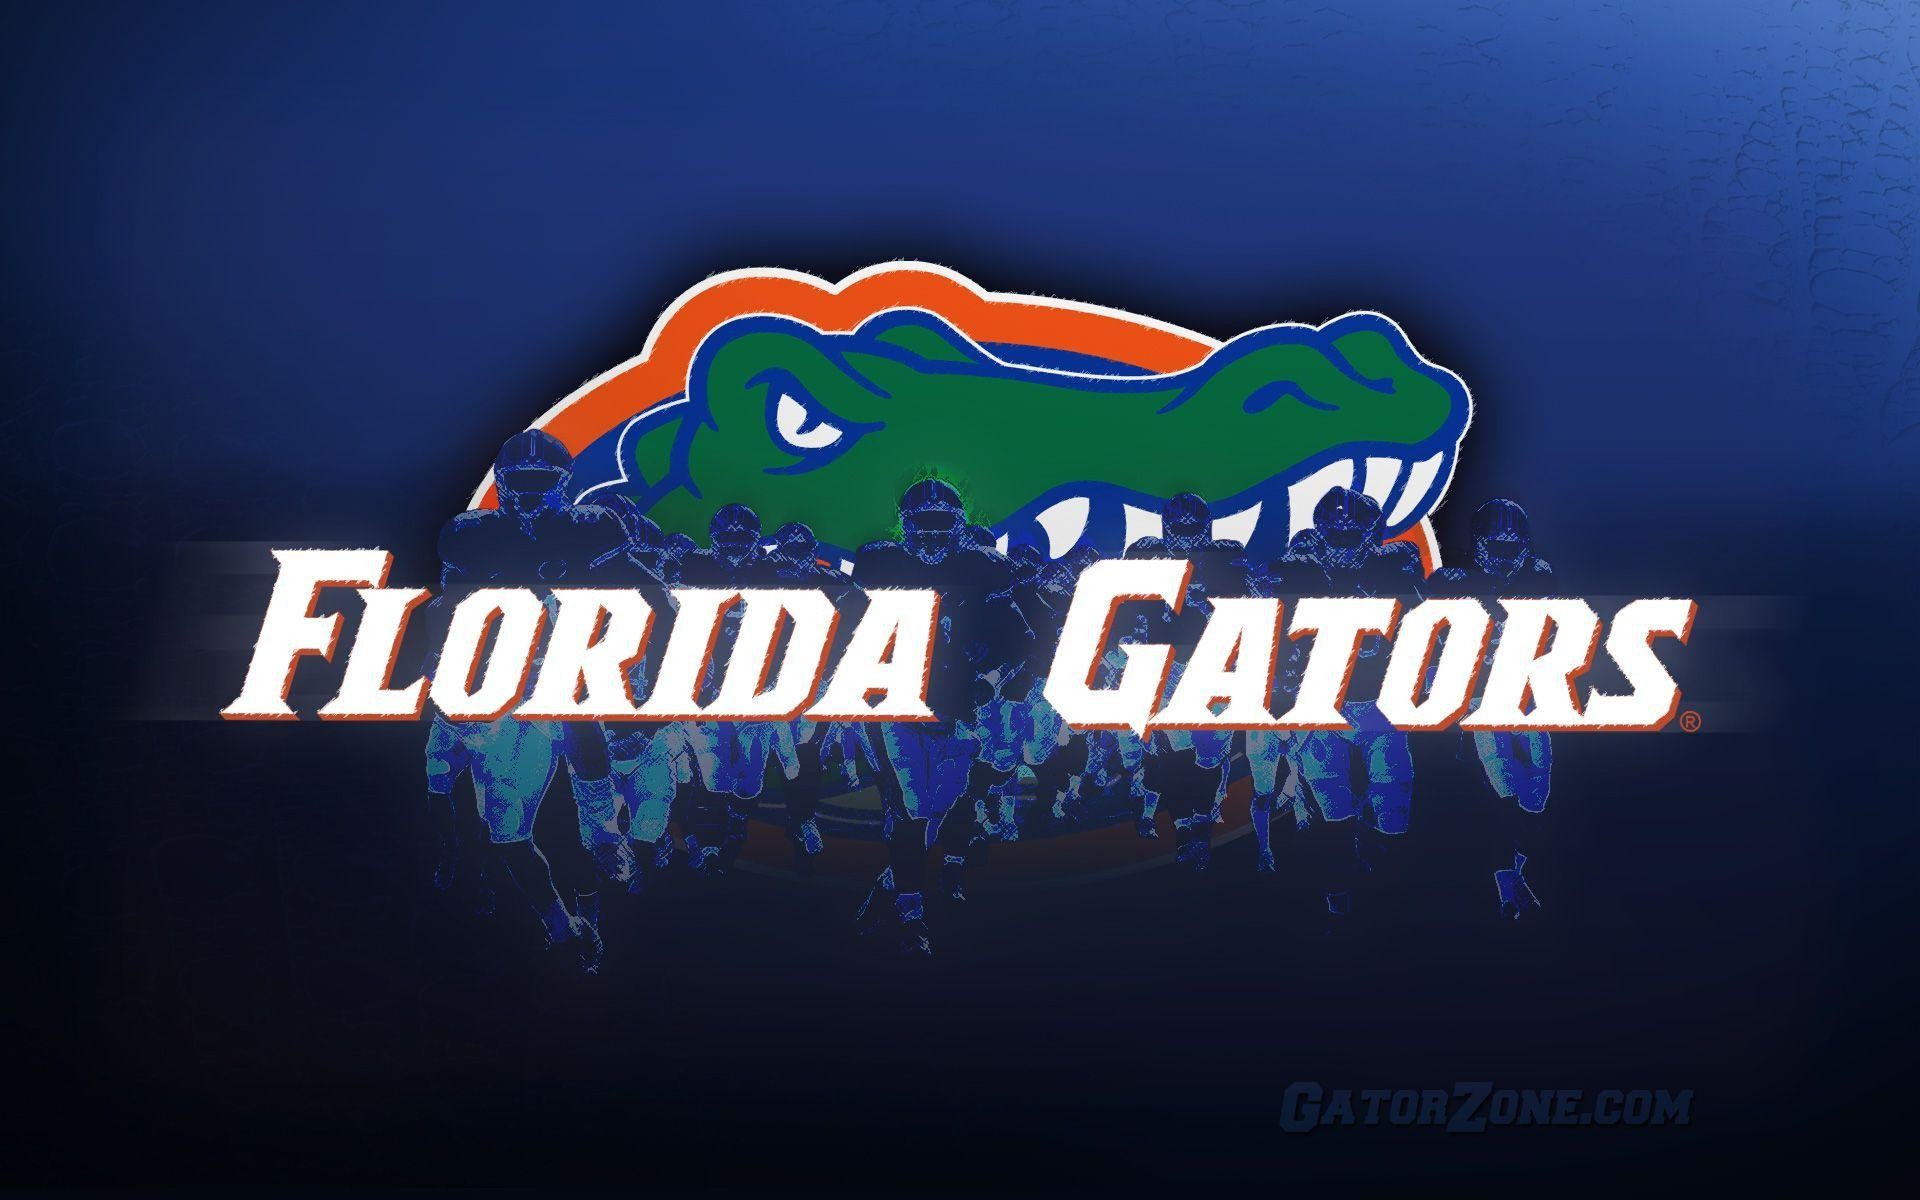 1920x1200 Free Download Amazing Florida Gators Football Images